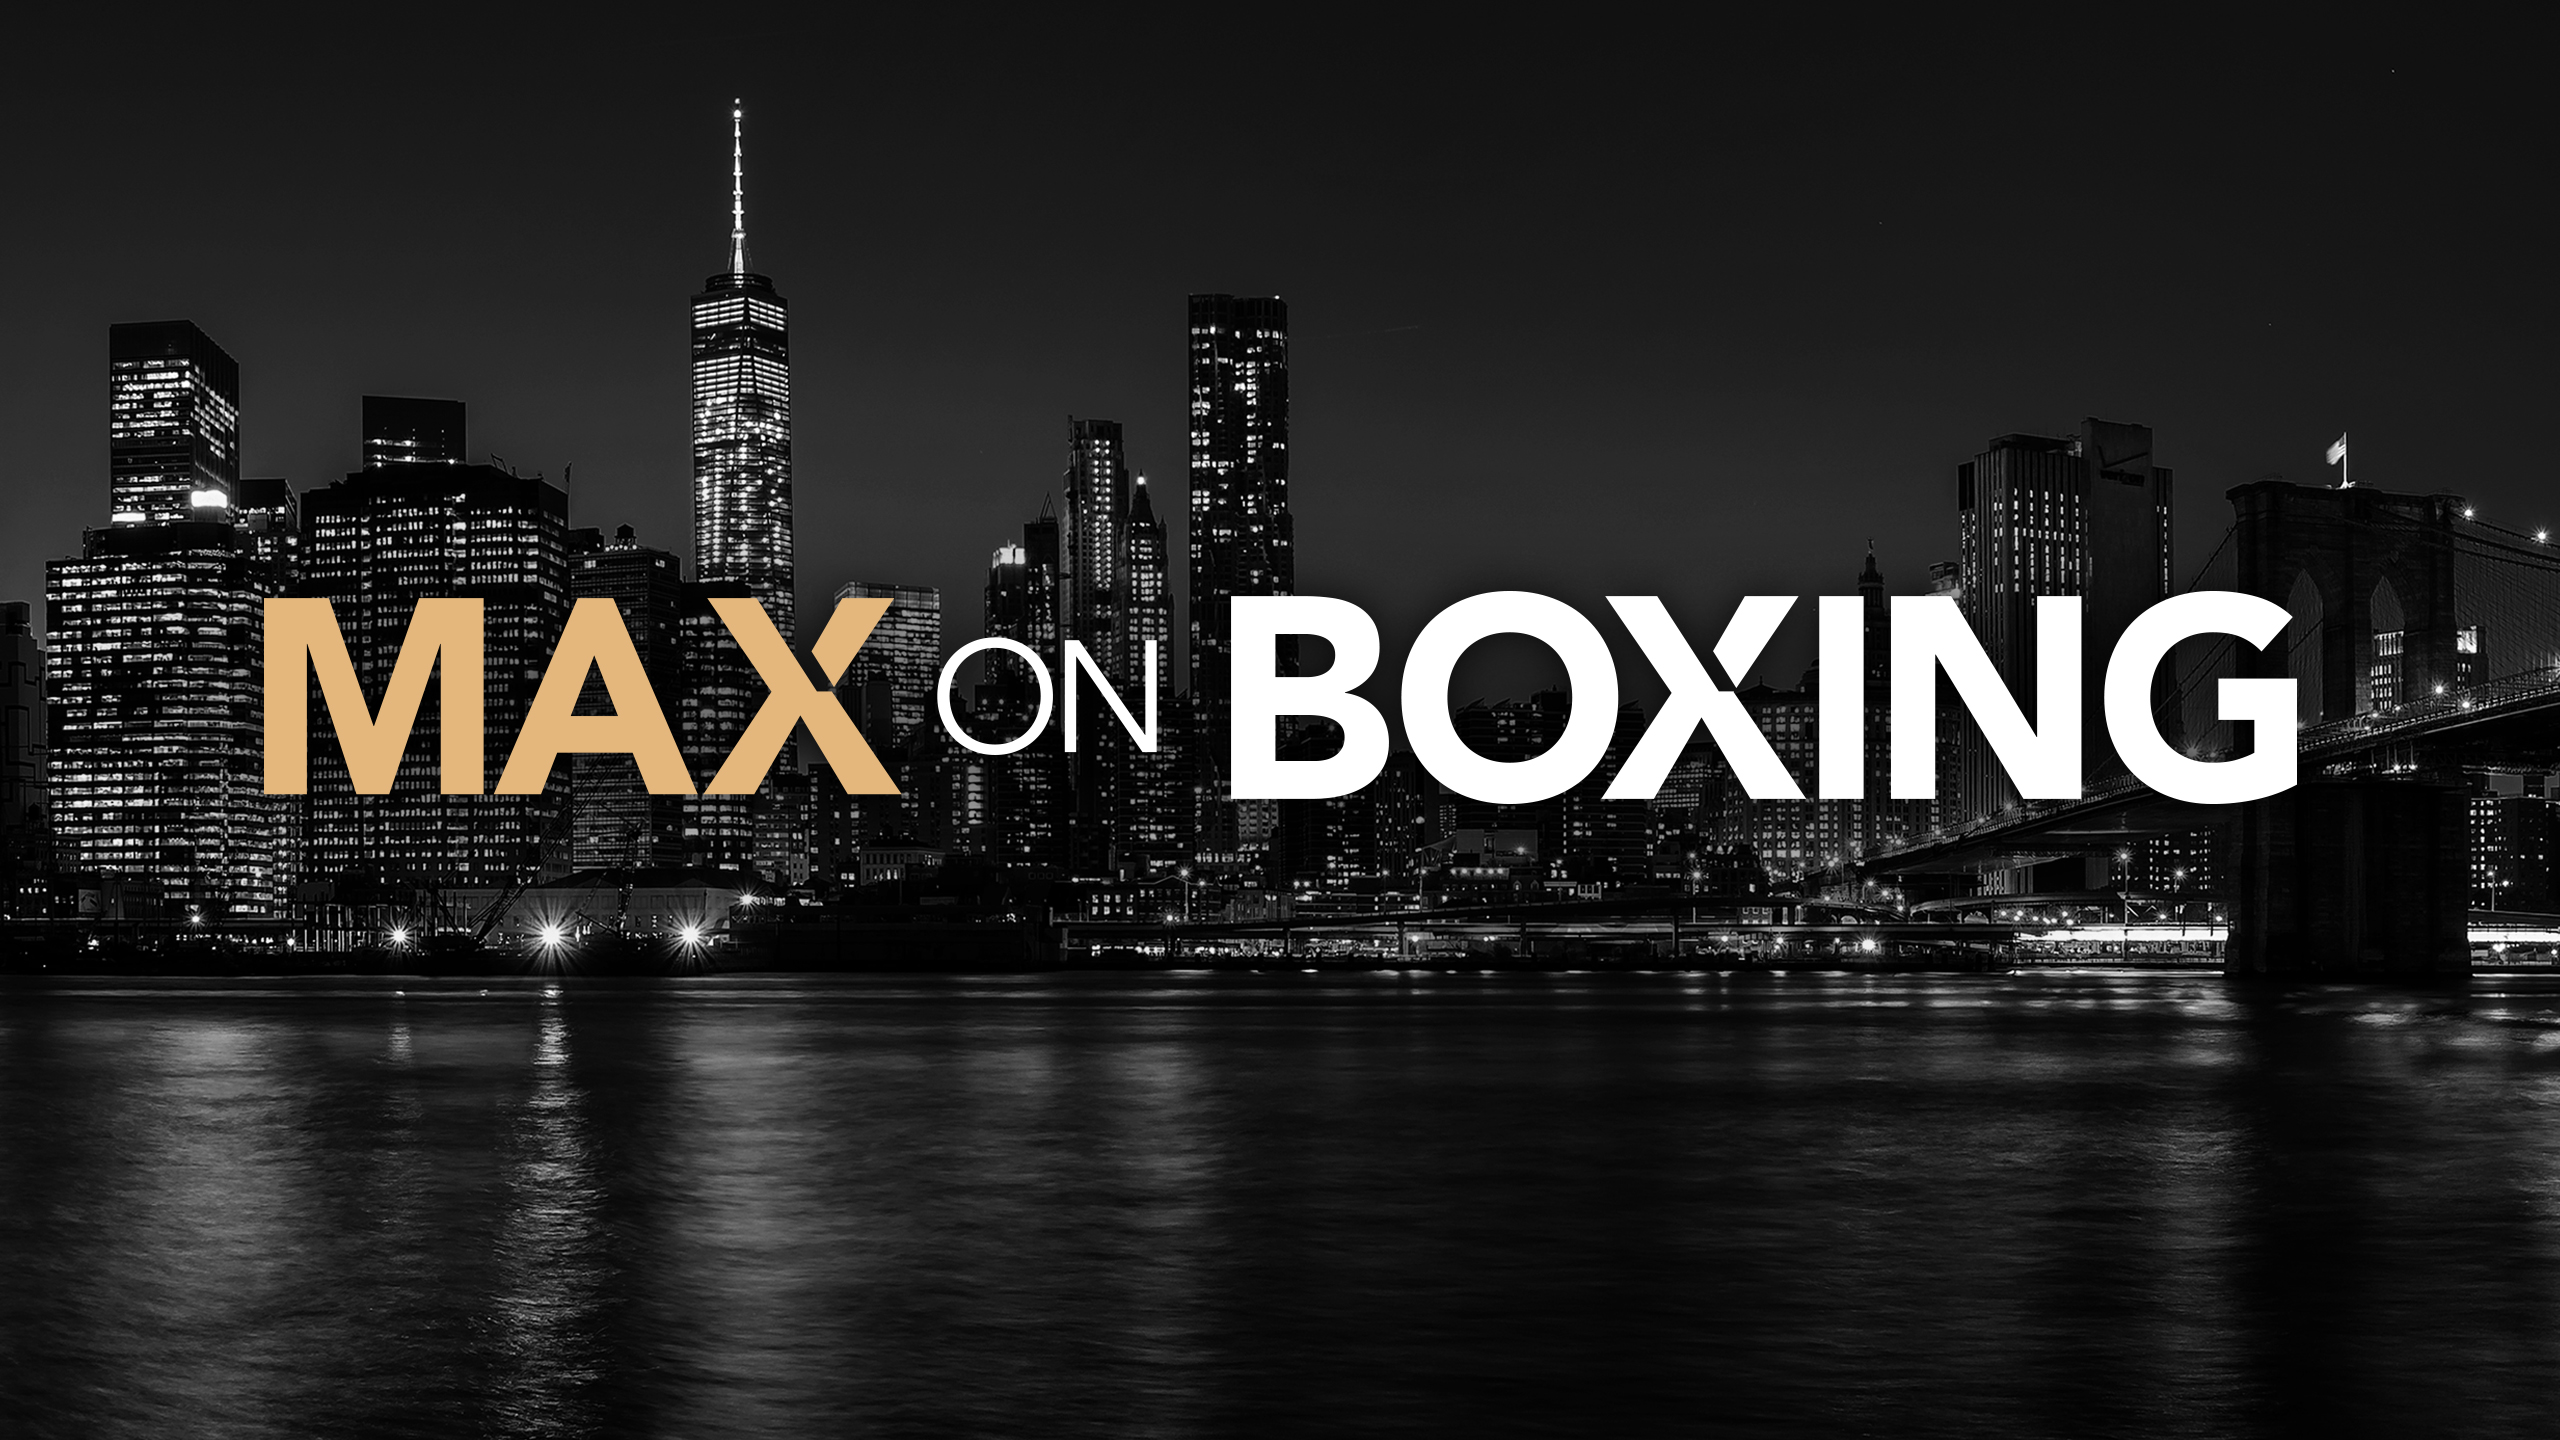 Fri, 4/19 - Max on Boxing